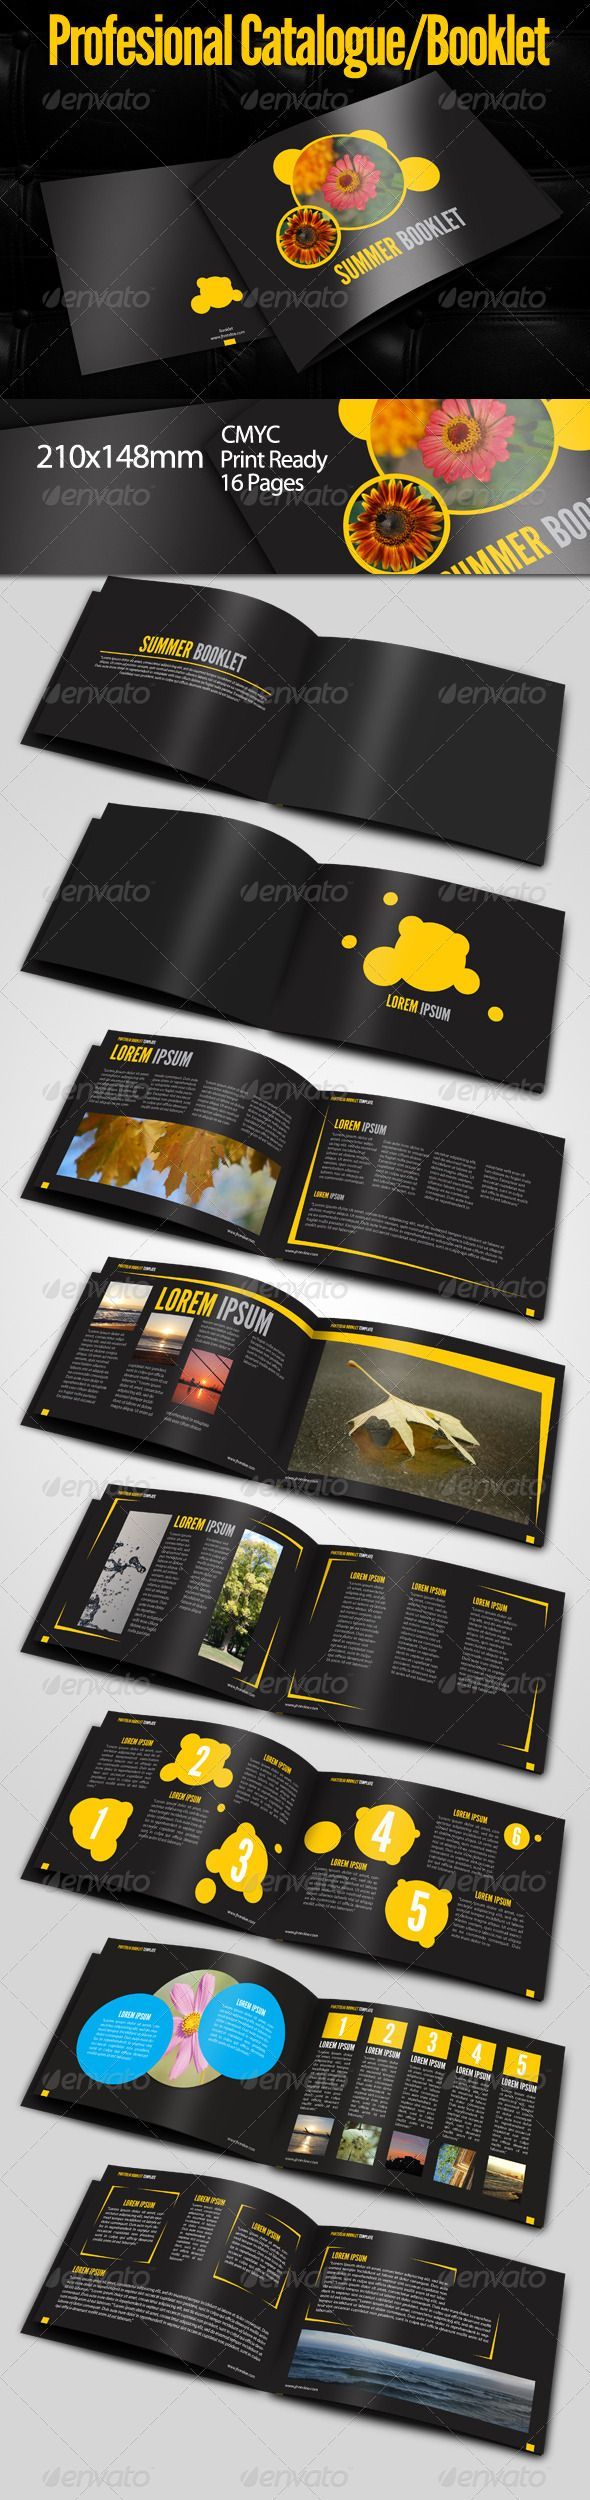 Summer Booklet Template - Corporate Brochures